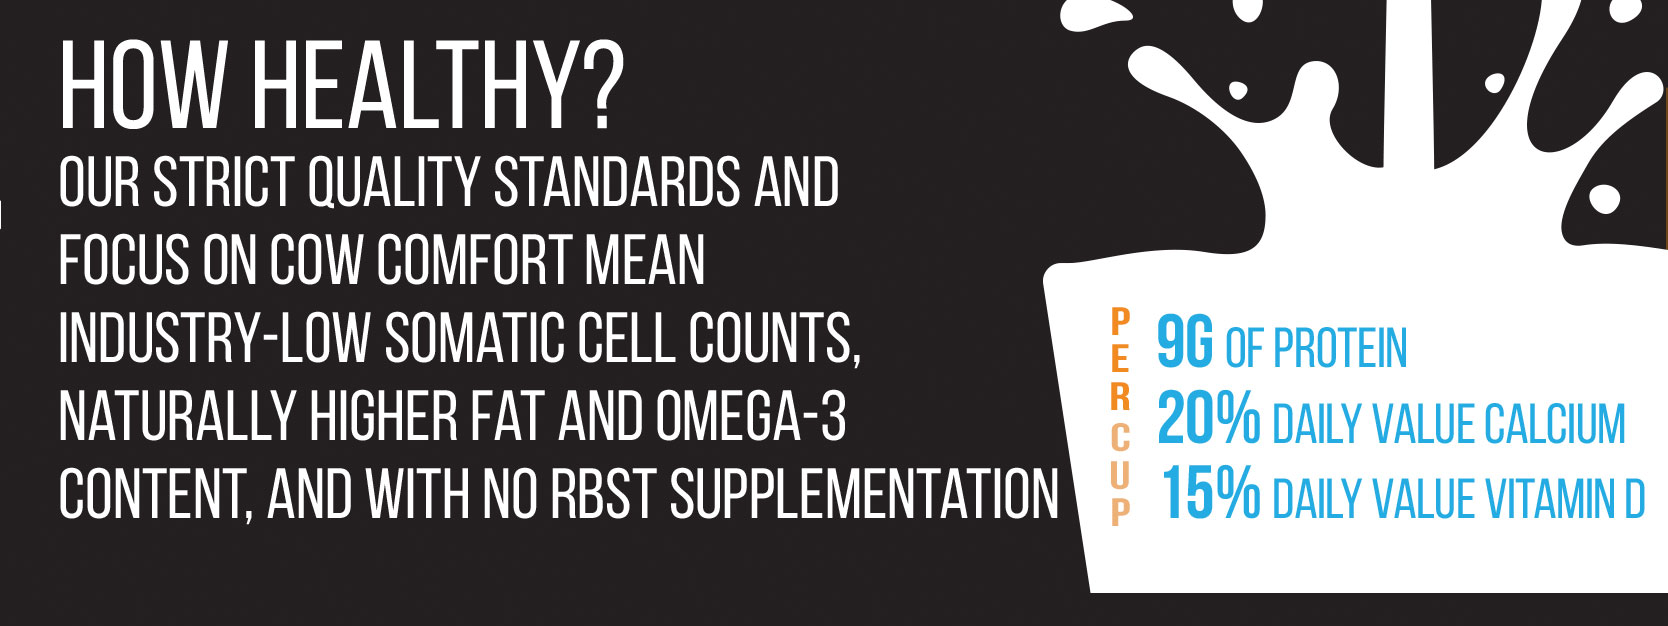 How Good? our industry-low somatic cell count means better nutrition, naturally and without supplements